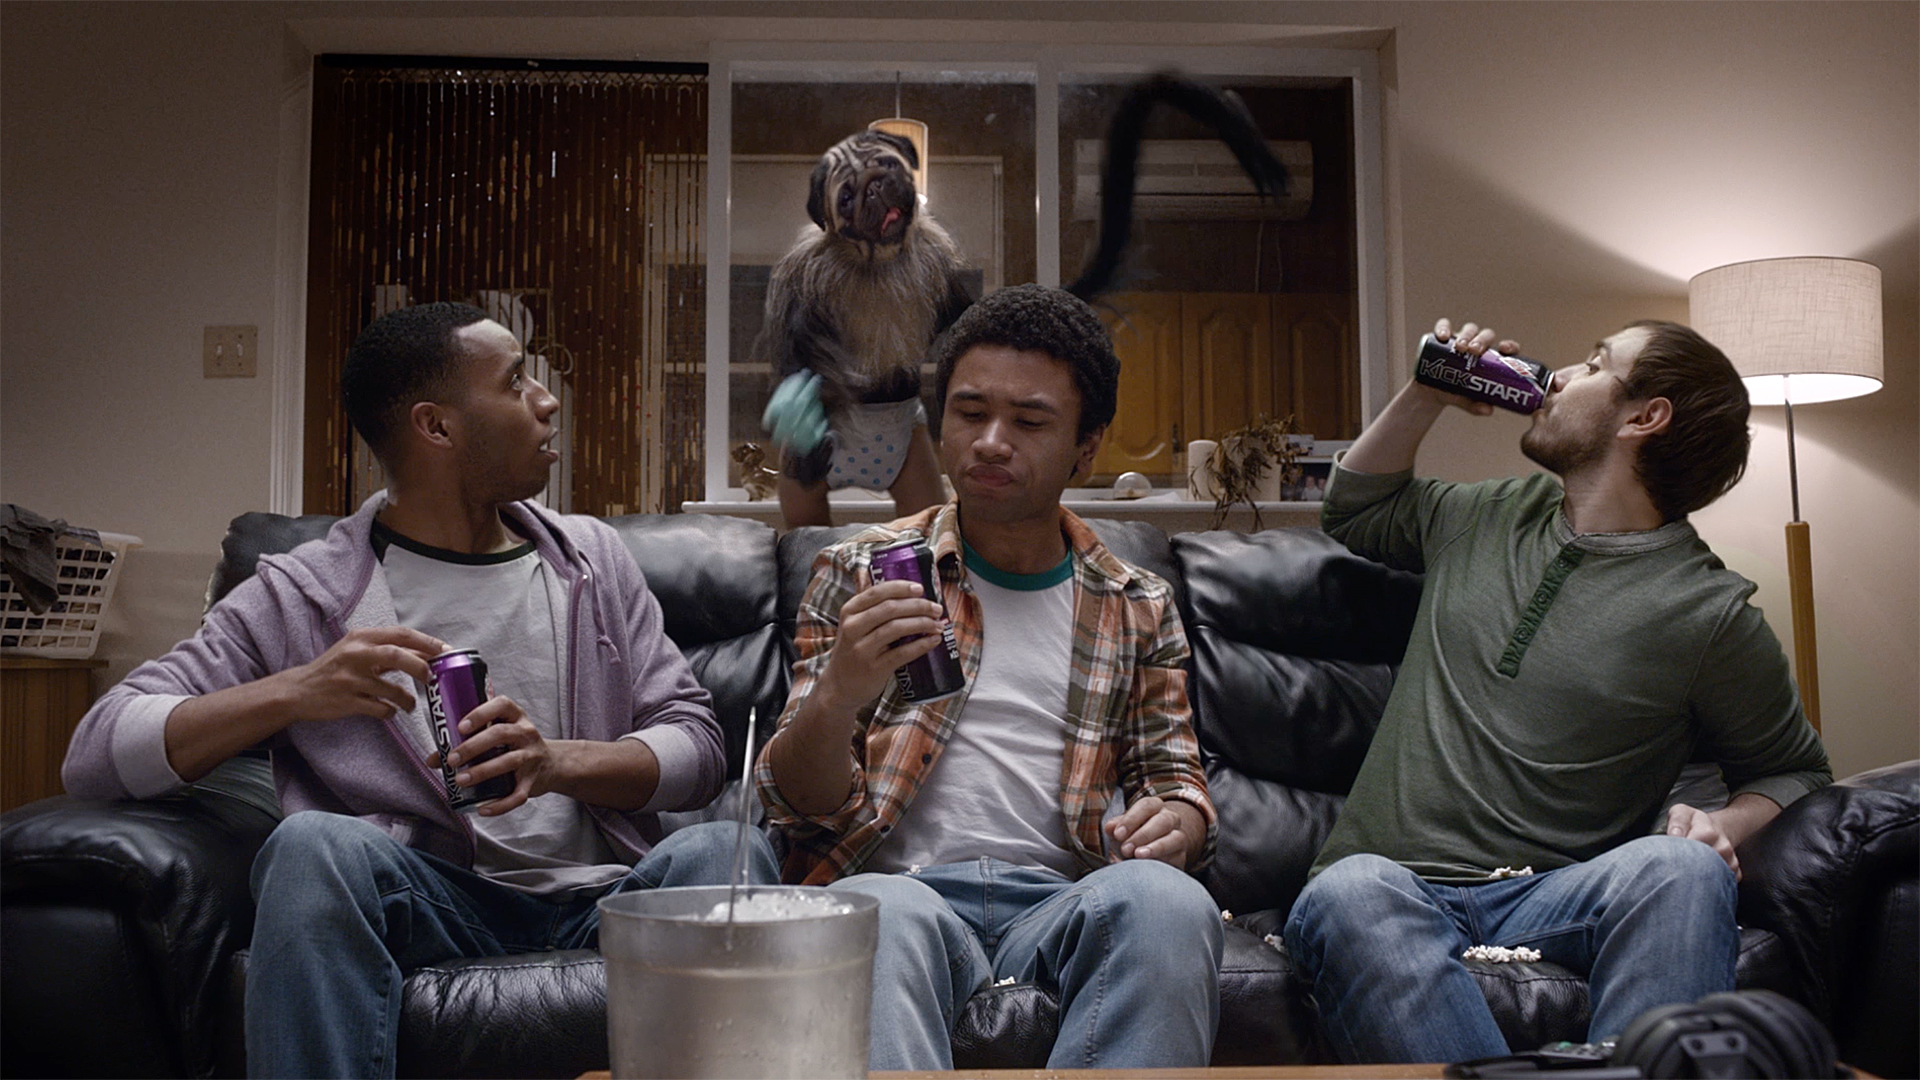 Between the Puppy Bowl and these five ads, dogs won the Super Bowl